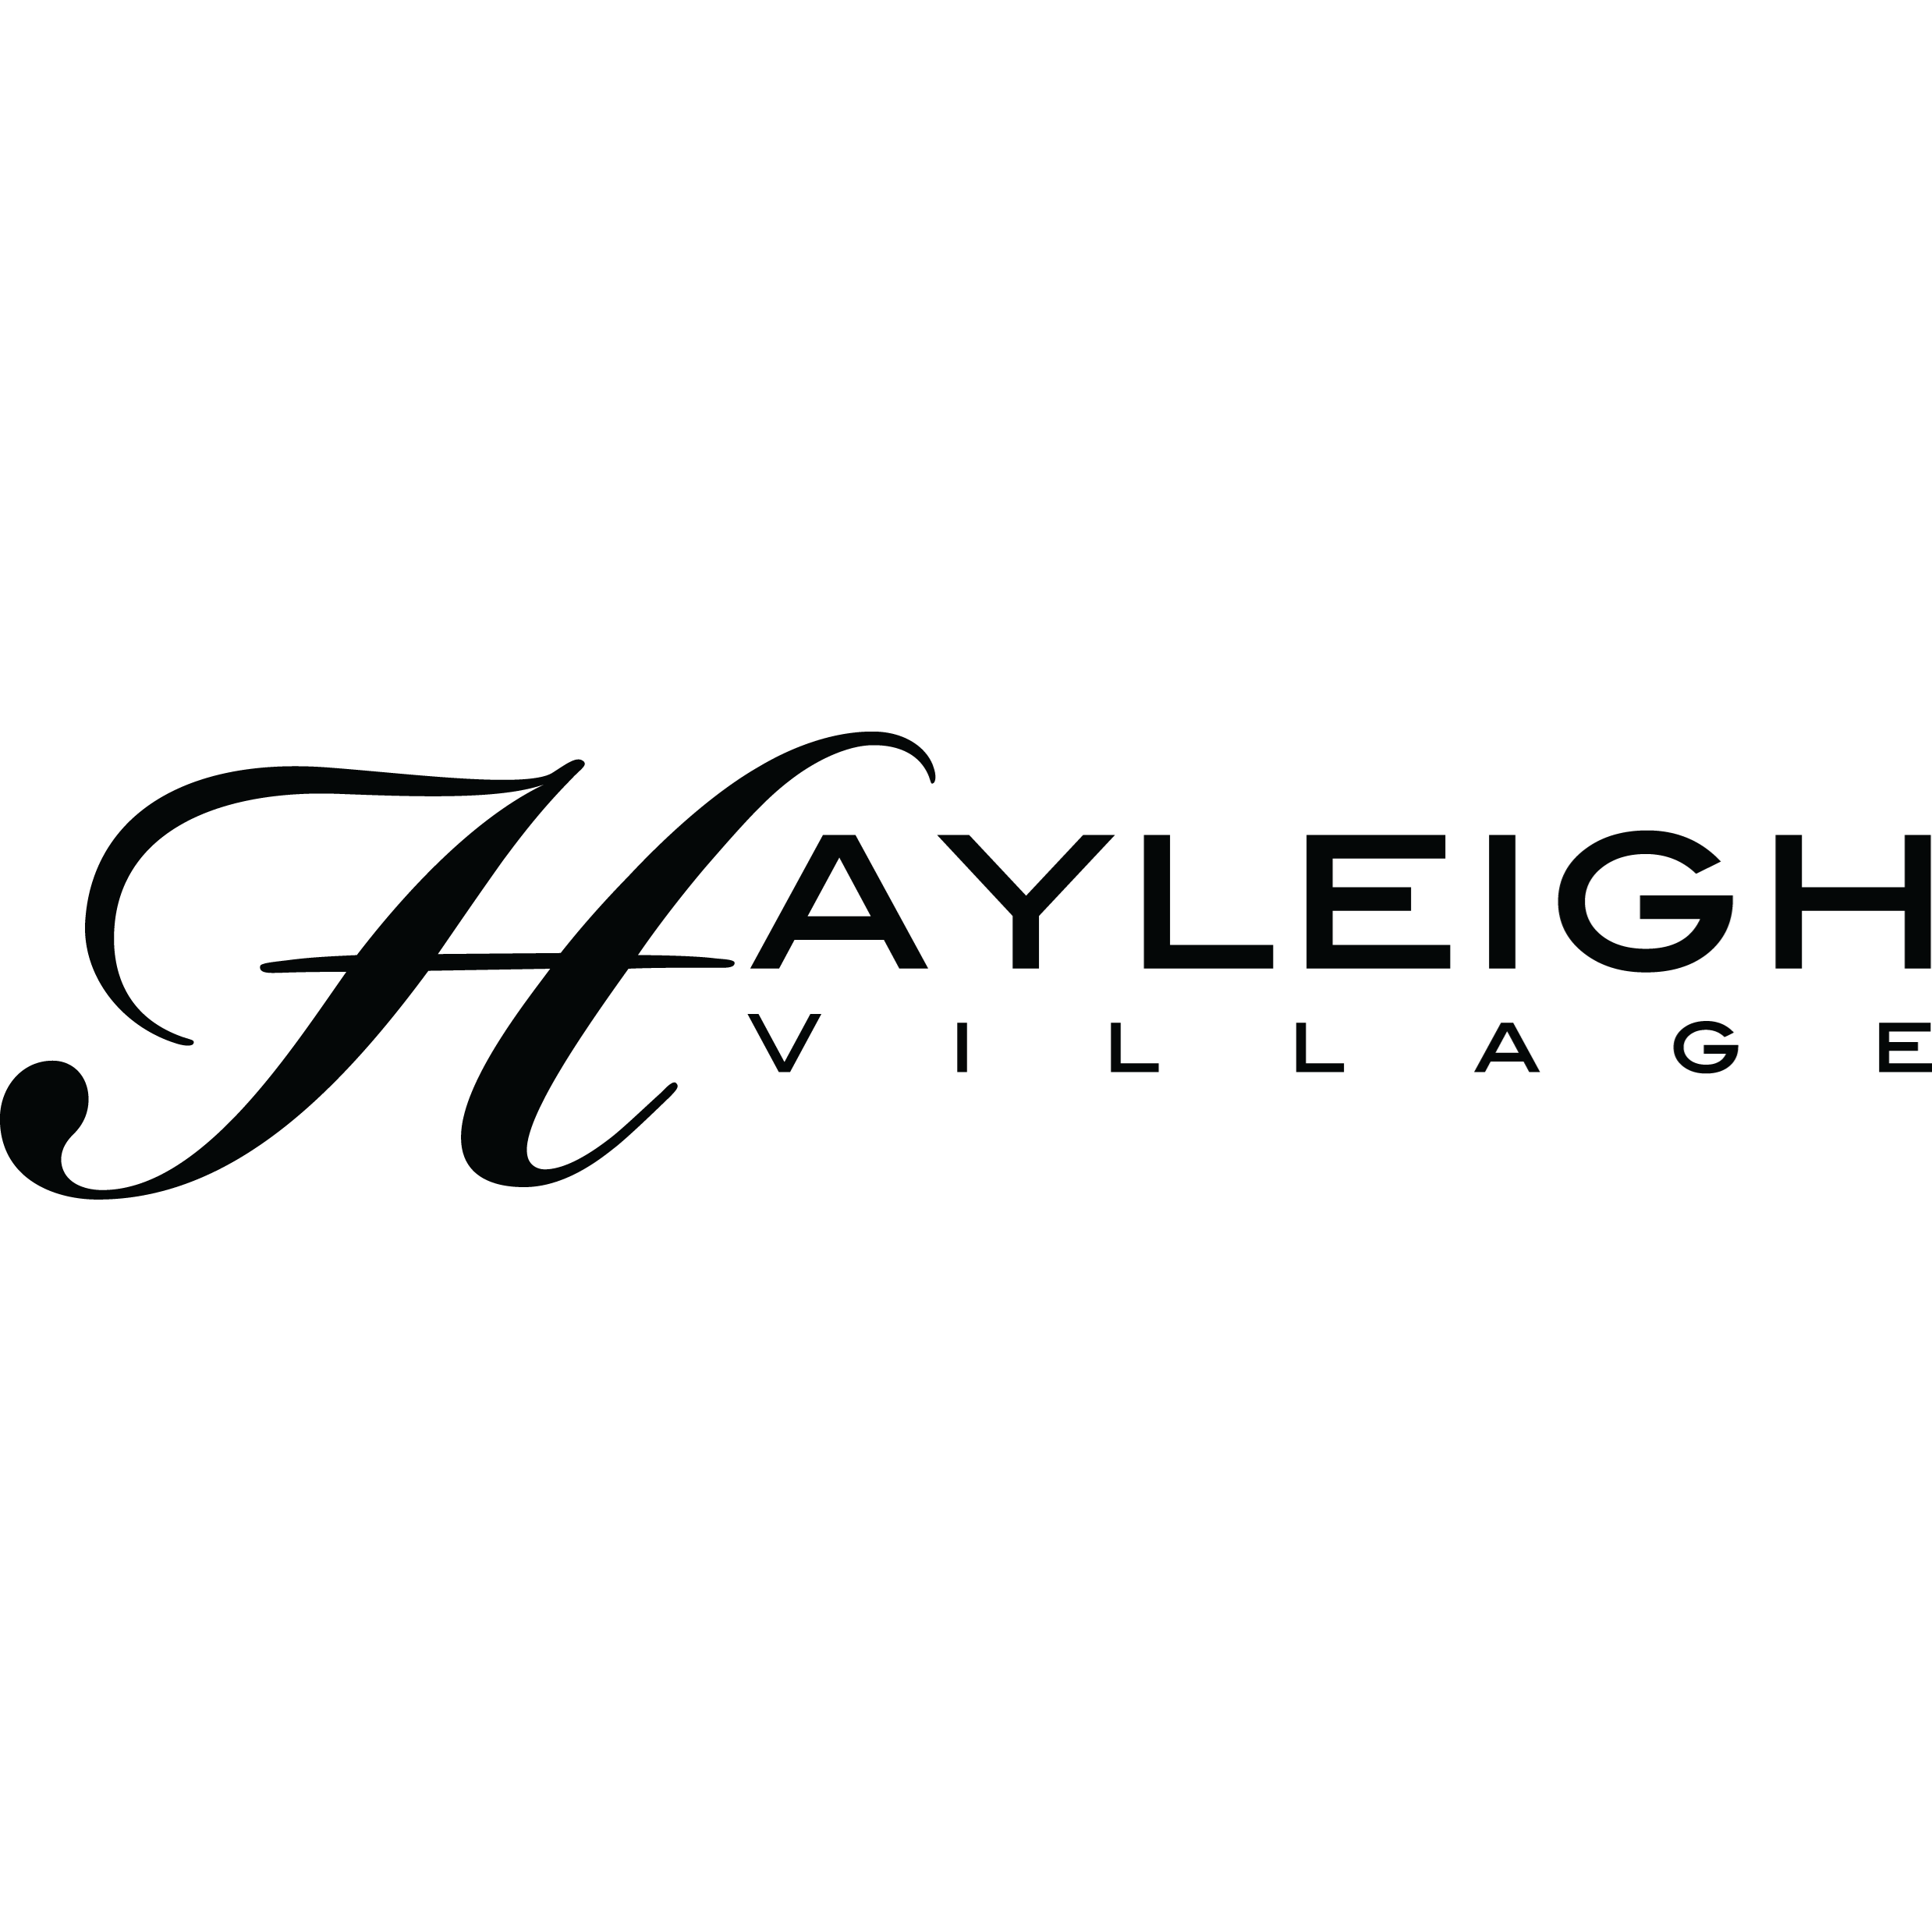 Hayleigh Village Apartments